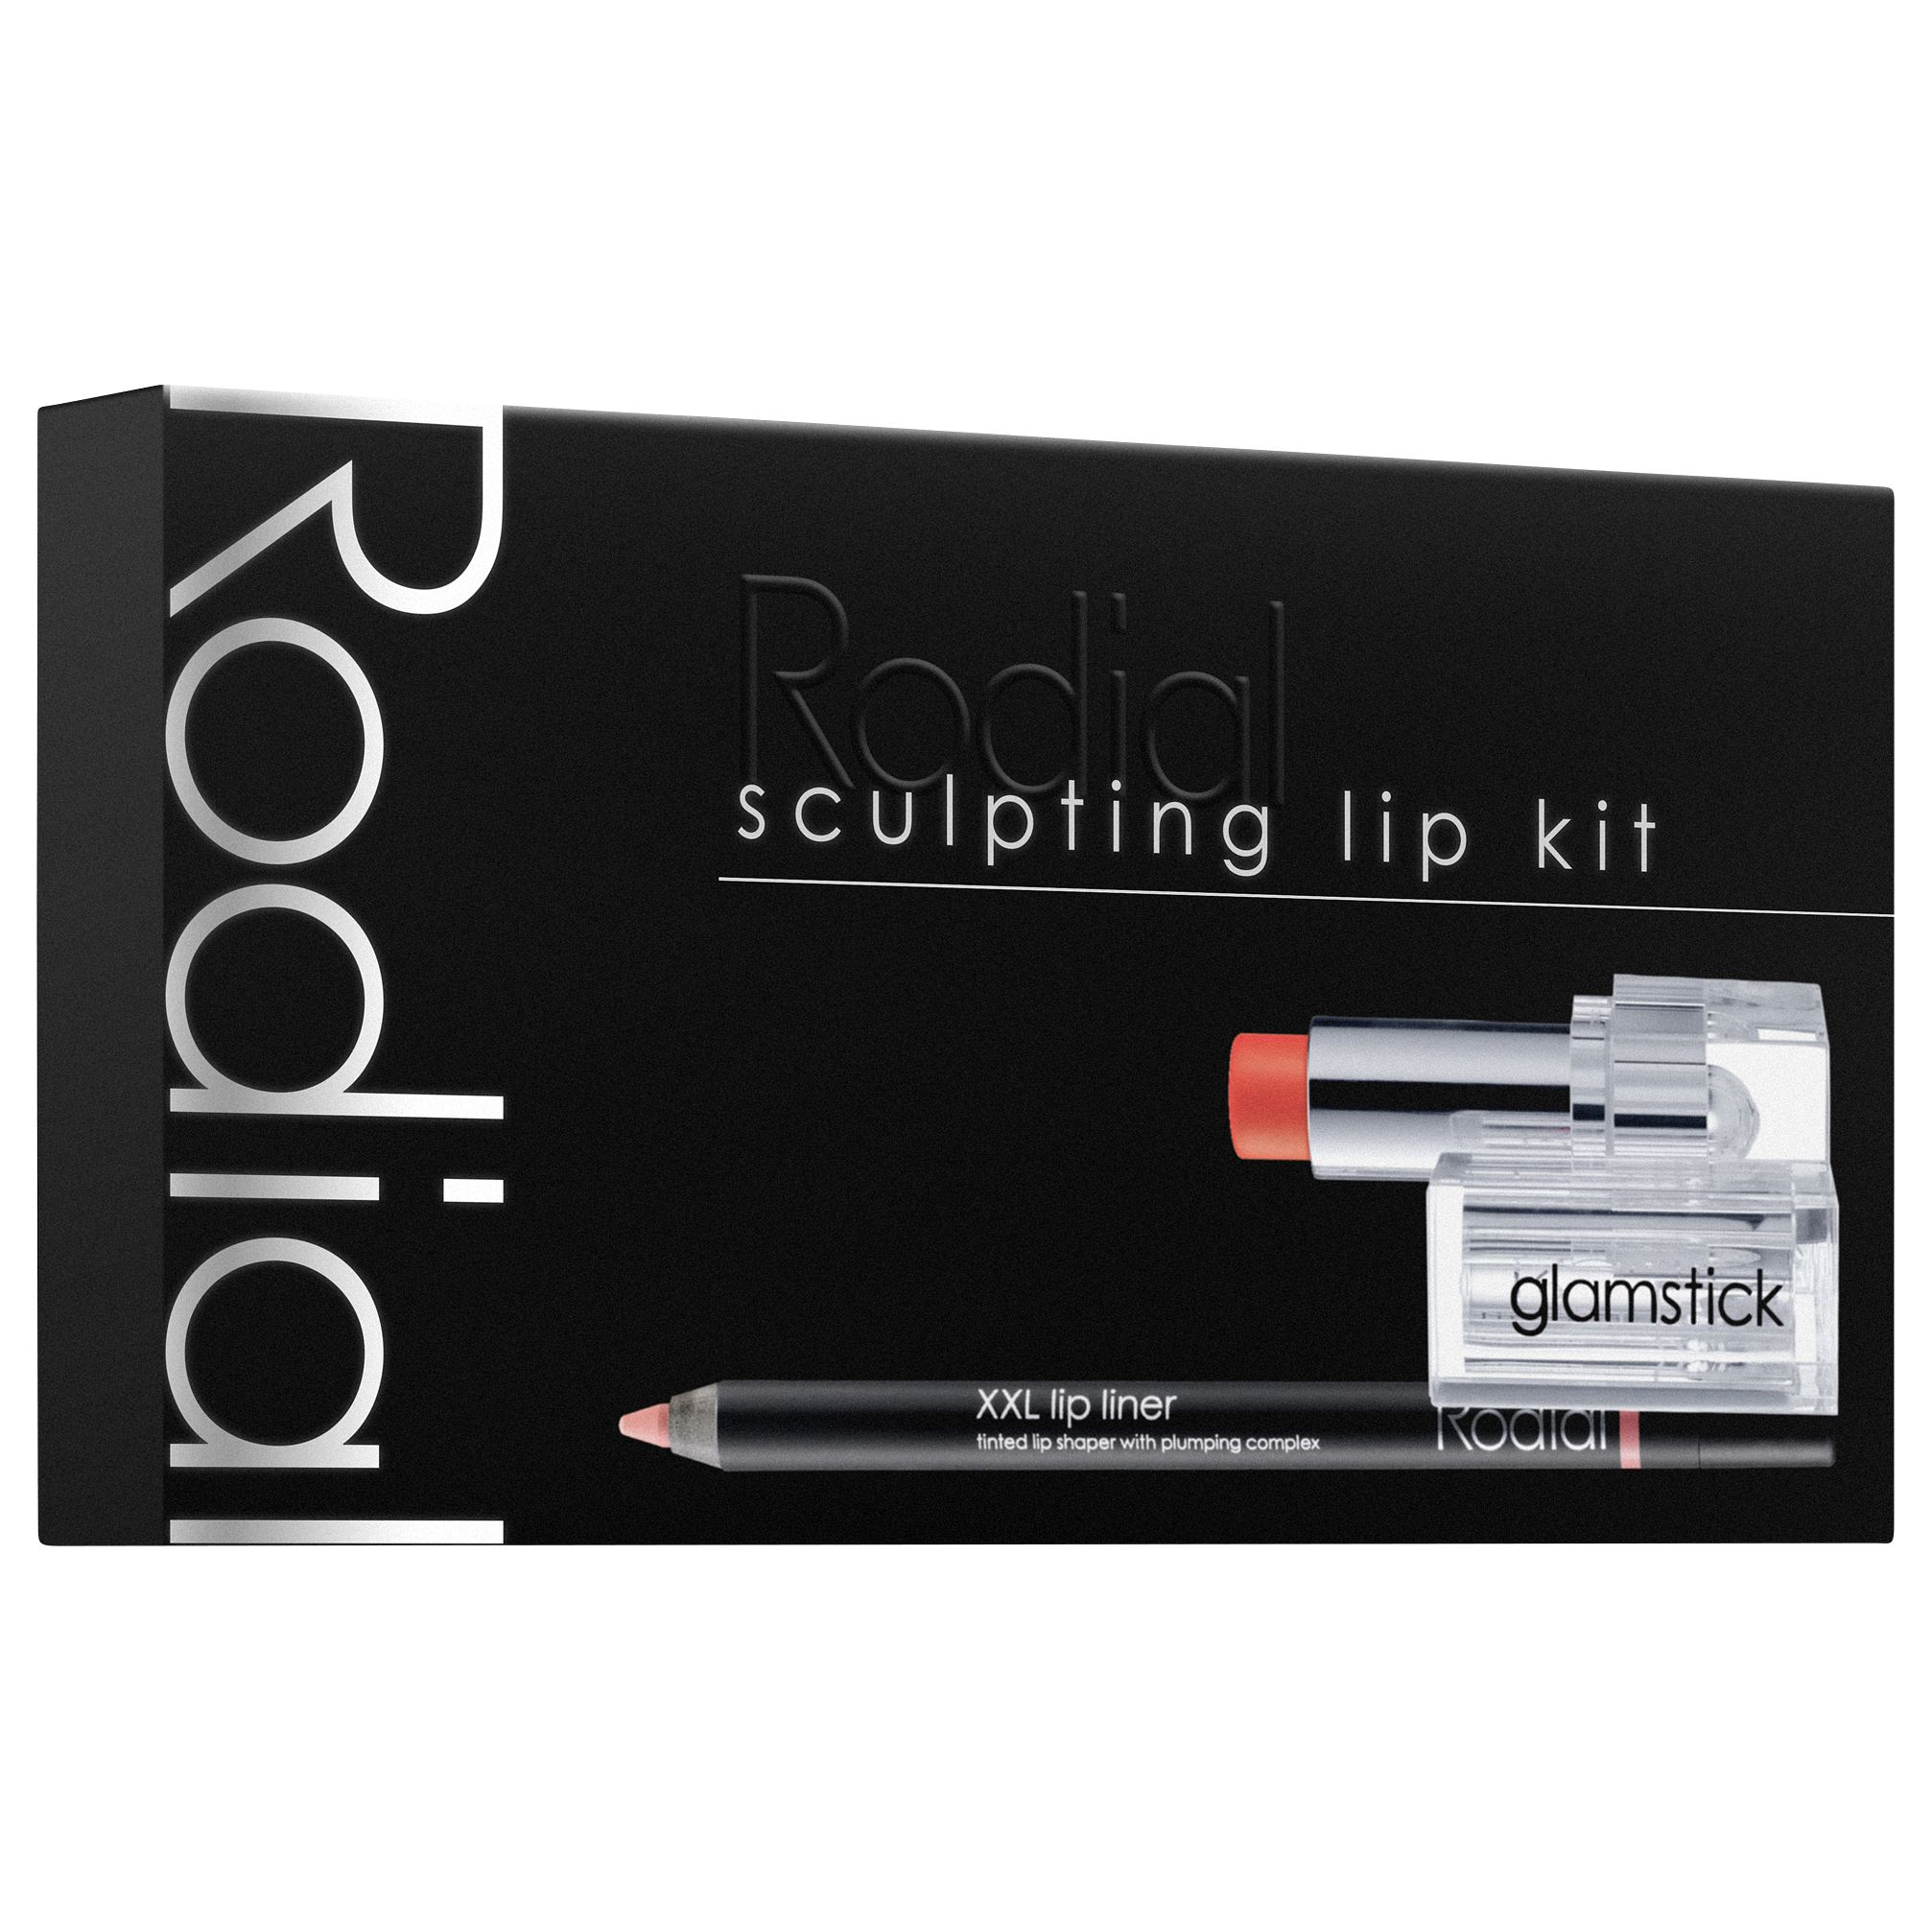 Rodial Rodial Sculpting Lip Kit